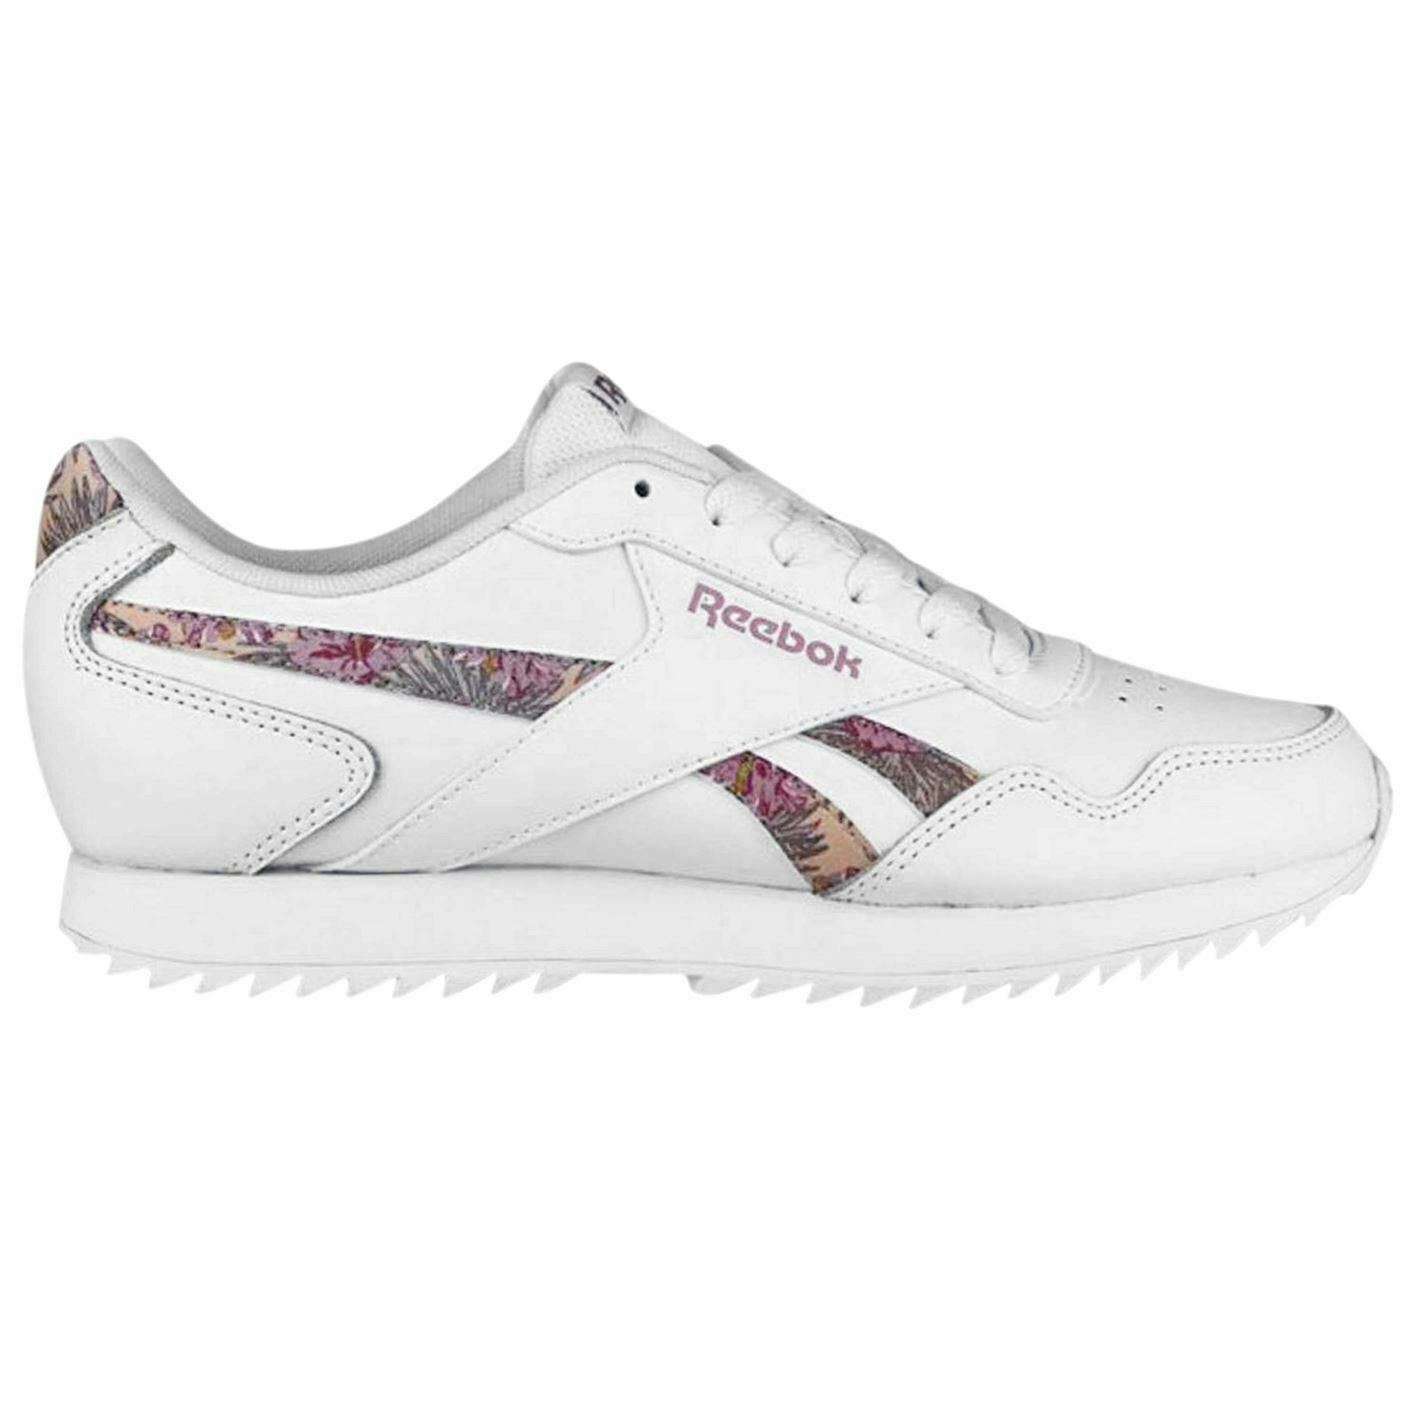 Reebok Royal Glide Ripple Floral Trainers Womens White Athleisure Sneakers shoes